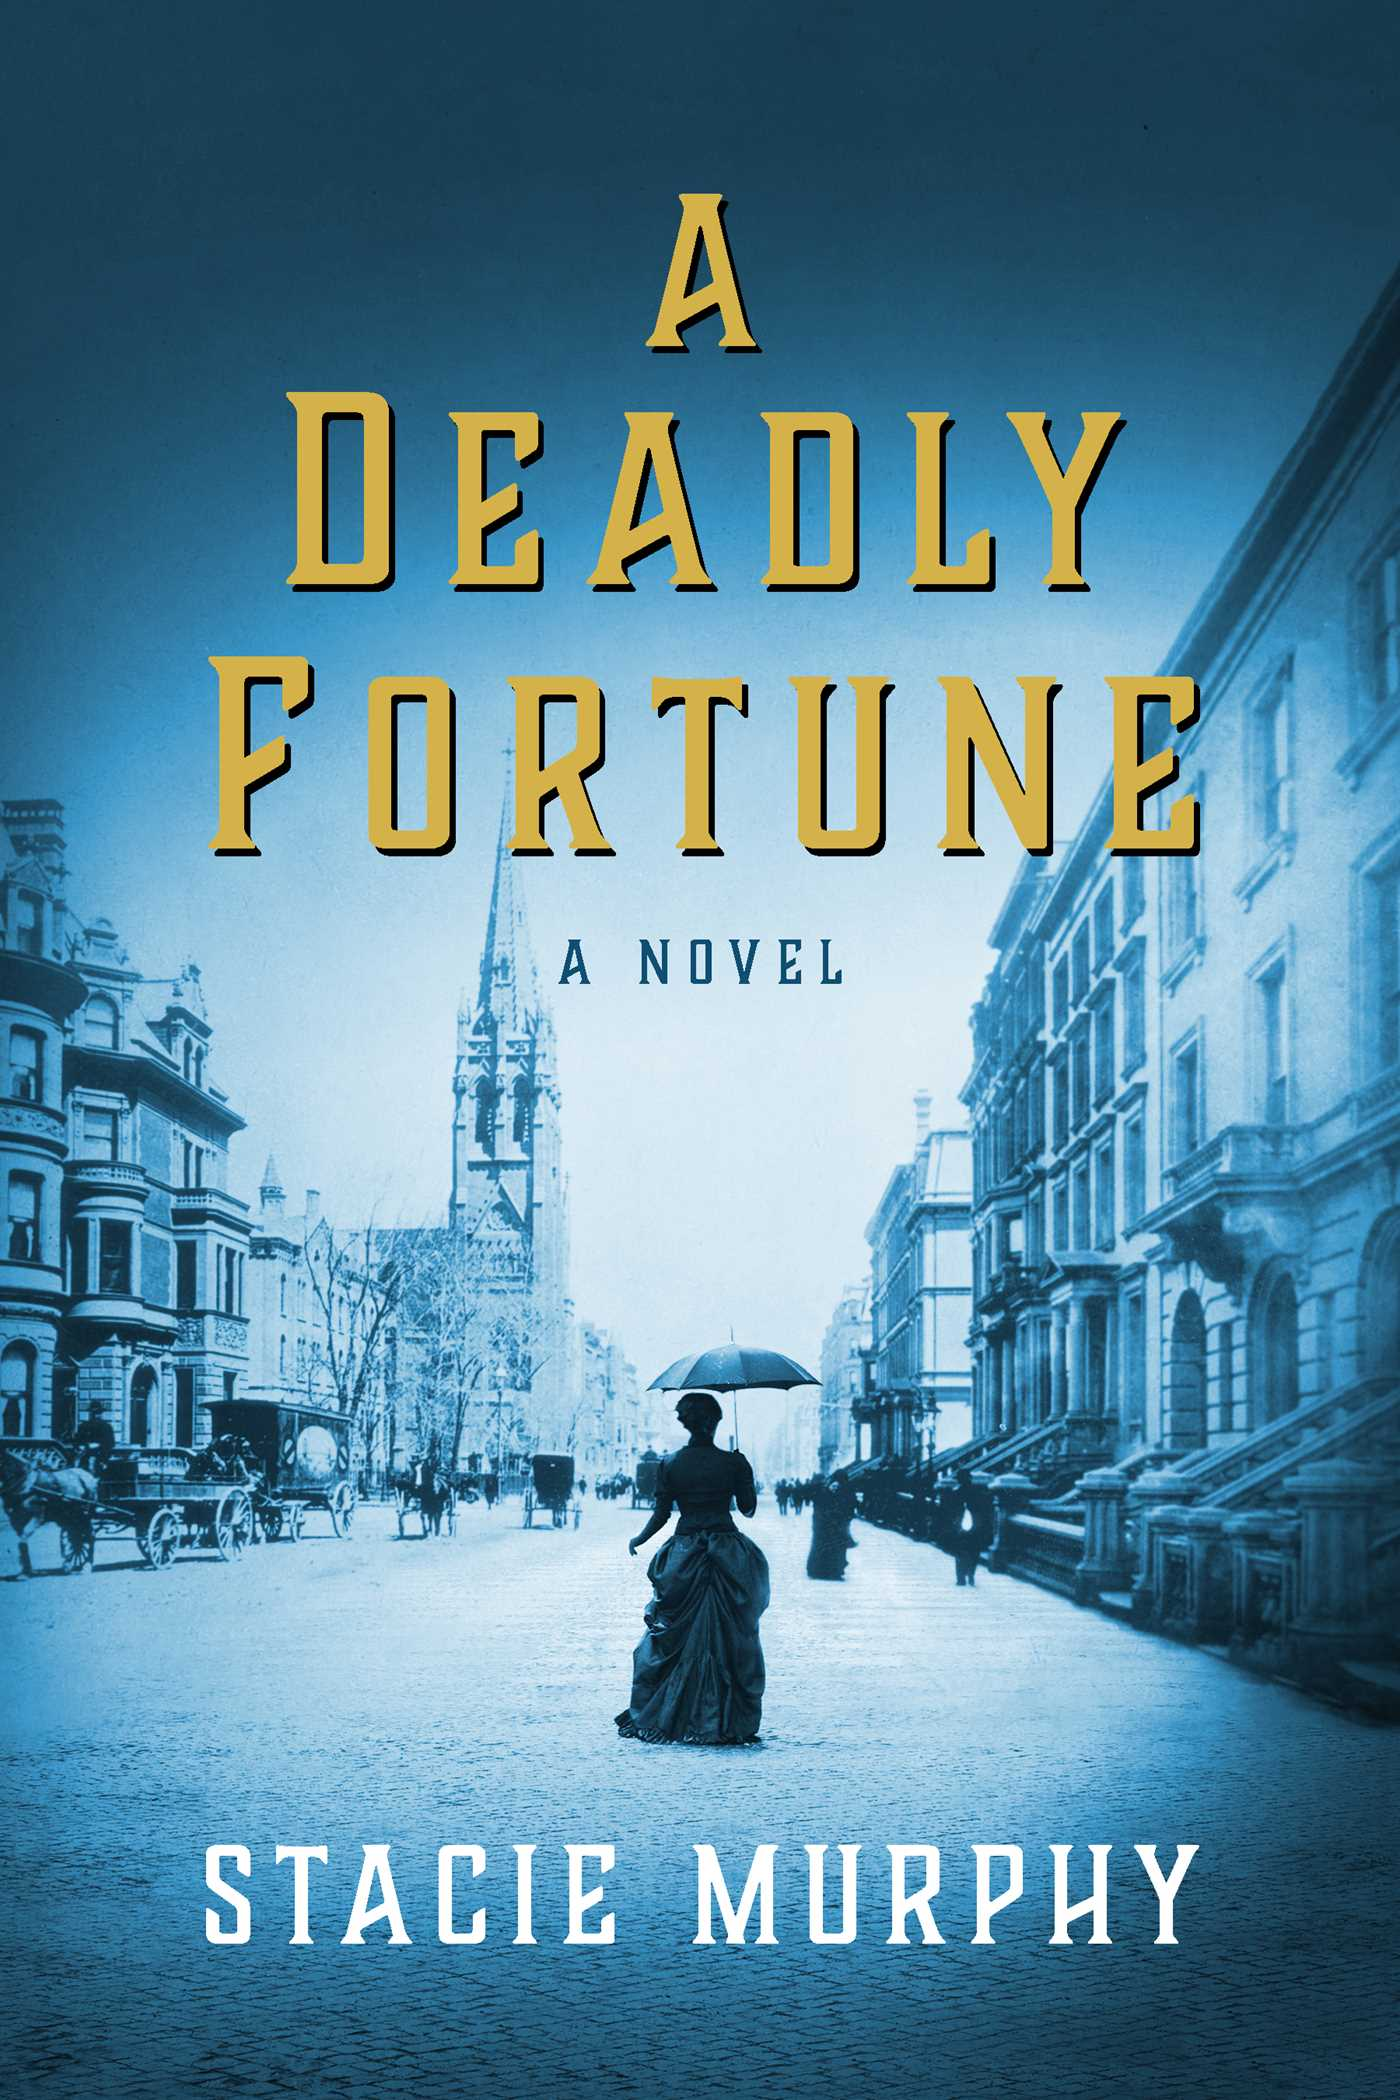 A Deadly Fortune A Novel